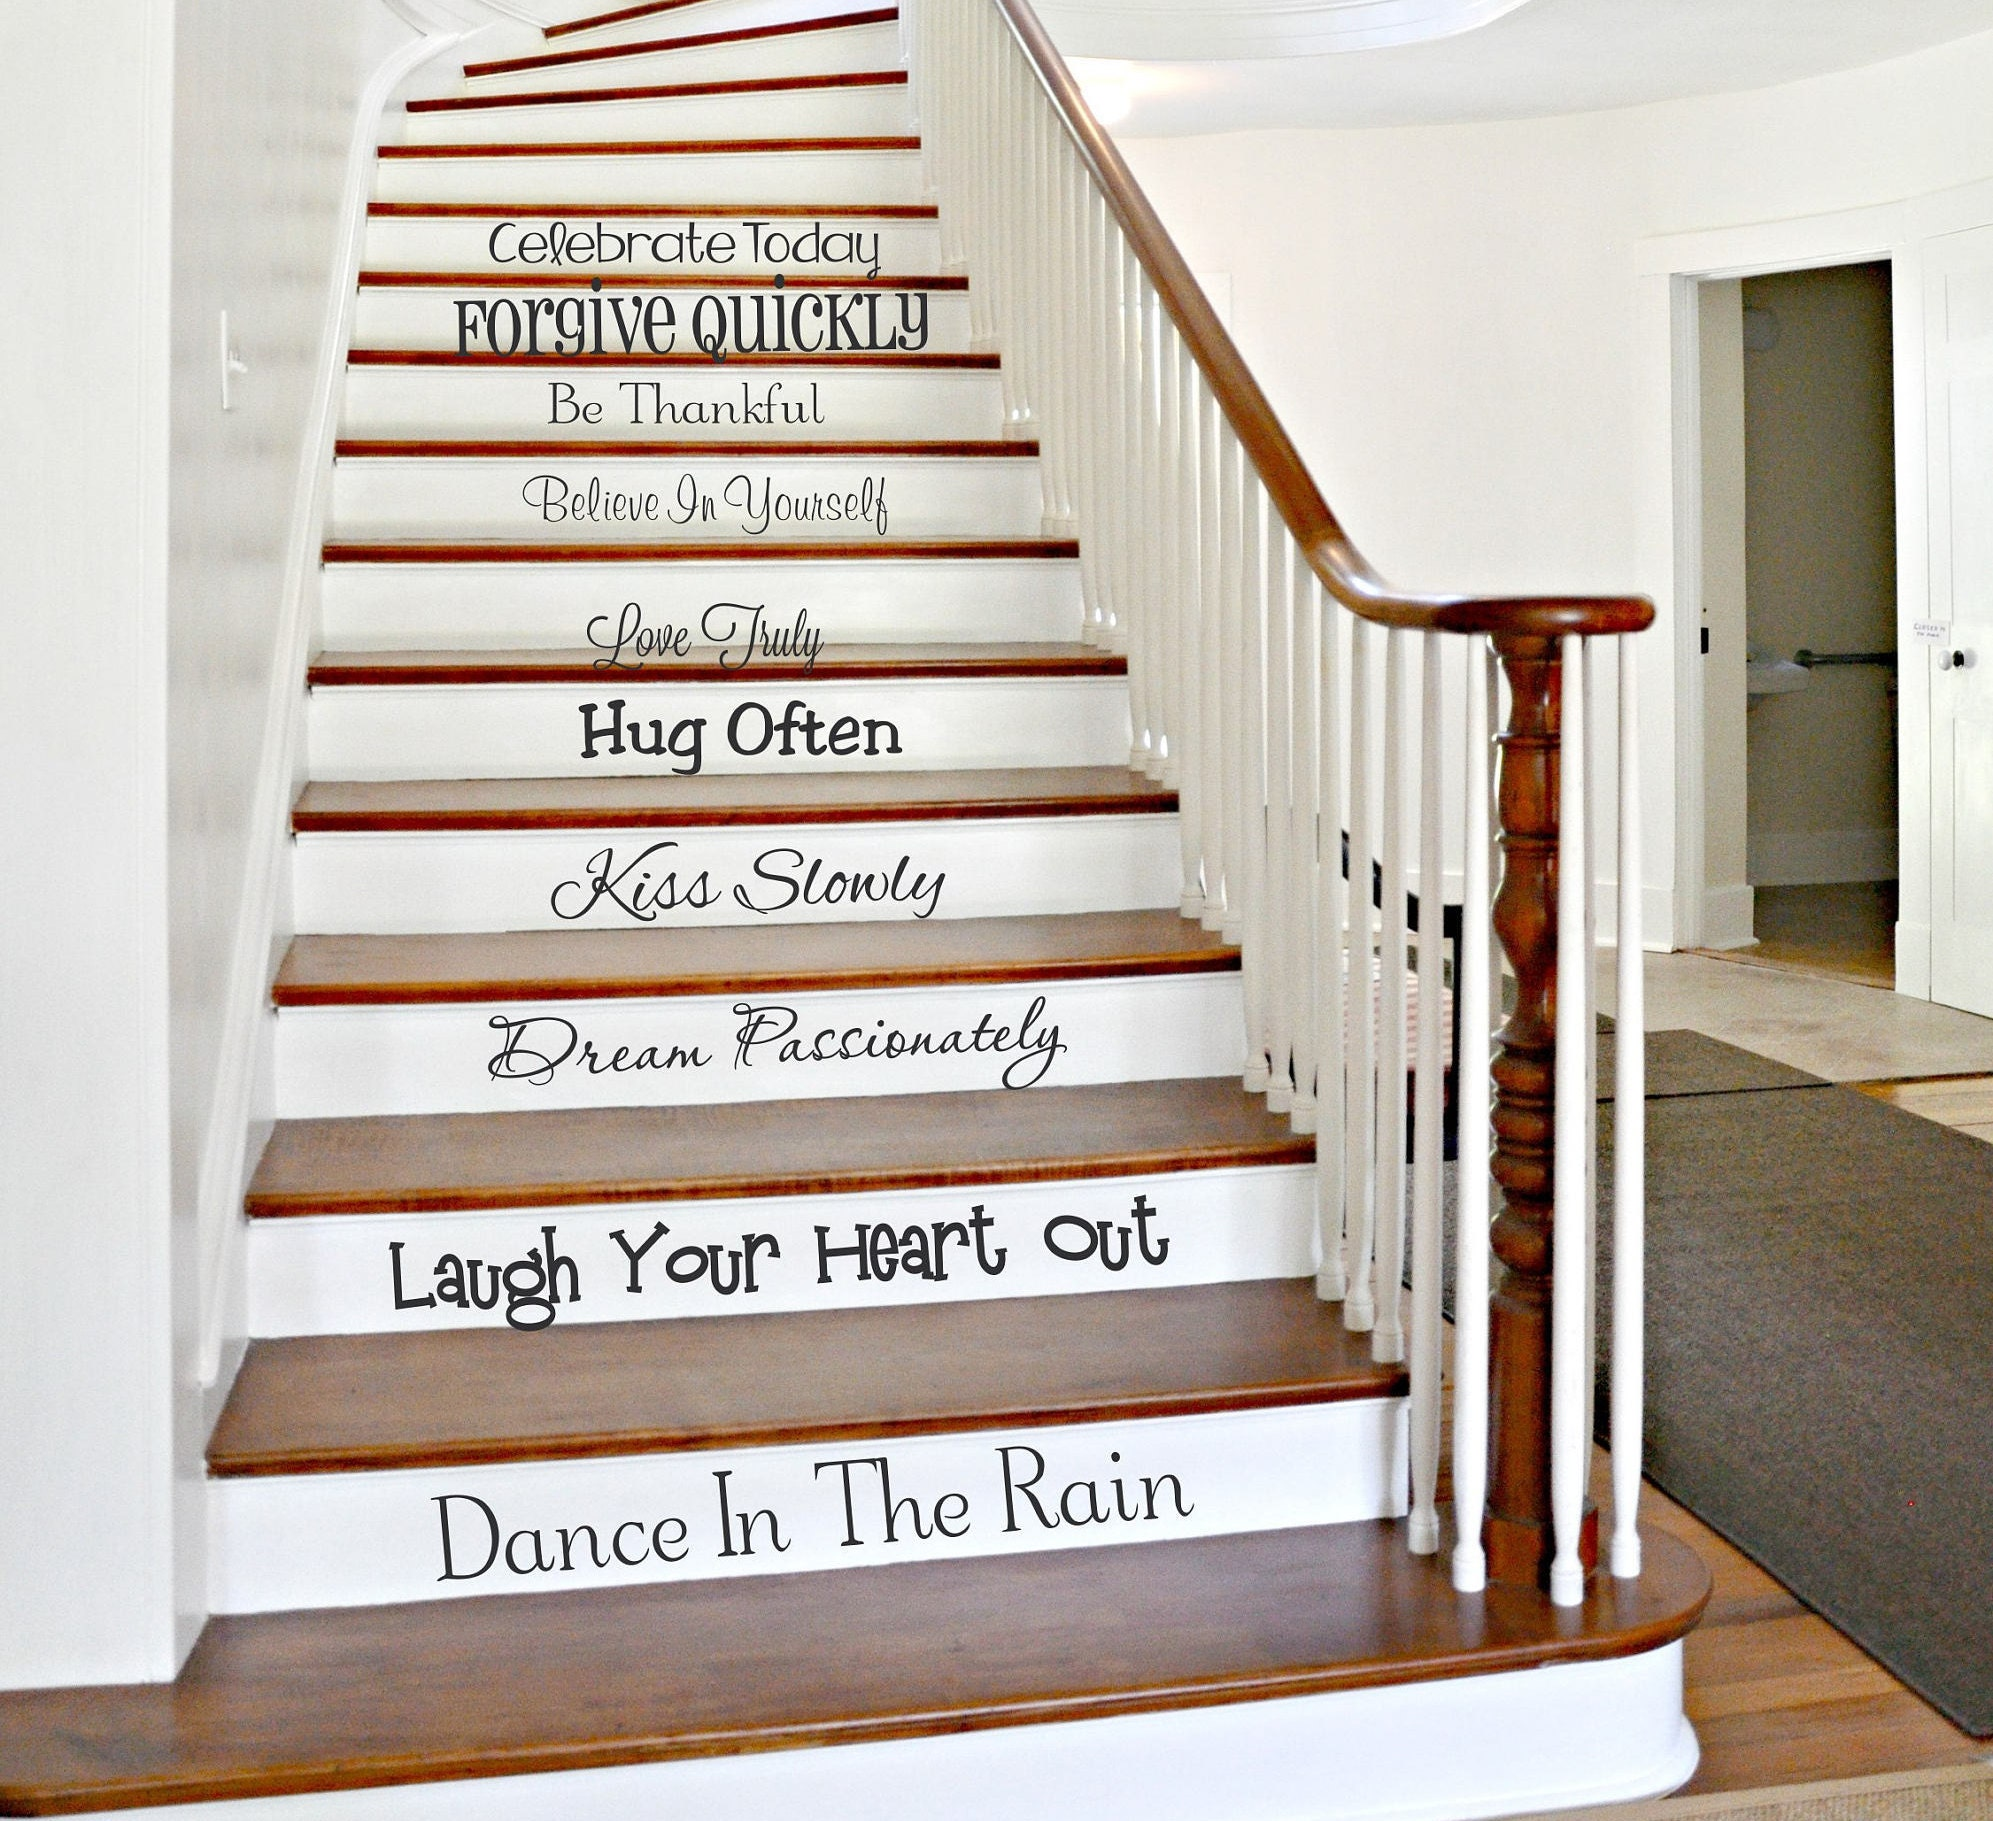 58 Cool Ideas For Decorating Stair Risers: Family Stair Decals We Do Stairway Decals Stair Riser